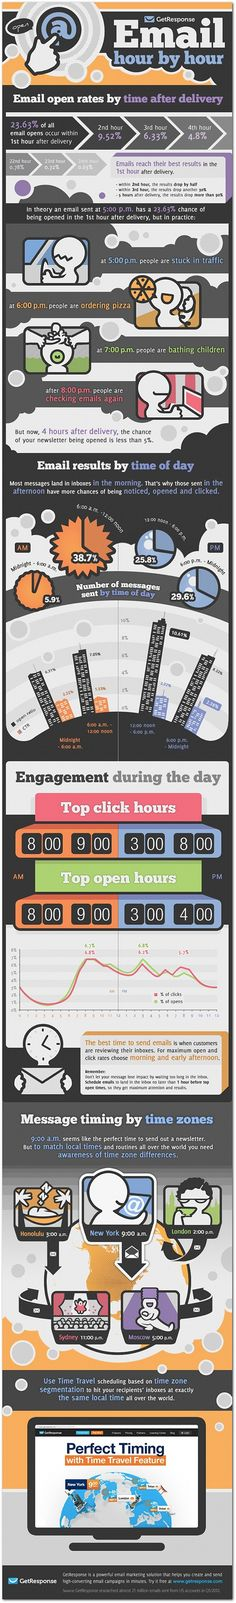 The best--and worst--times to send an email.  #Infographic Remember this is just a guide and you need to work out what works best for you. www.socialmediamamma.com